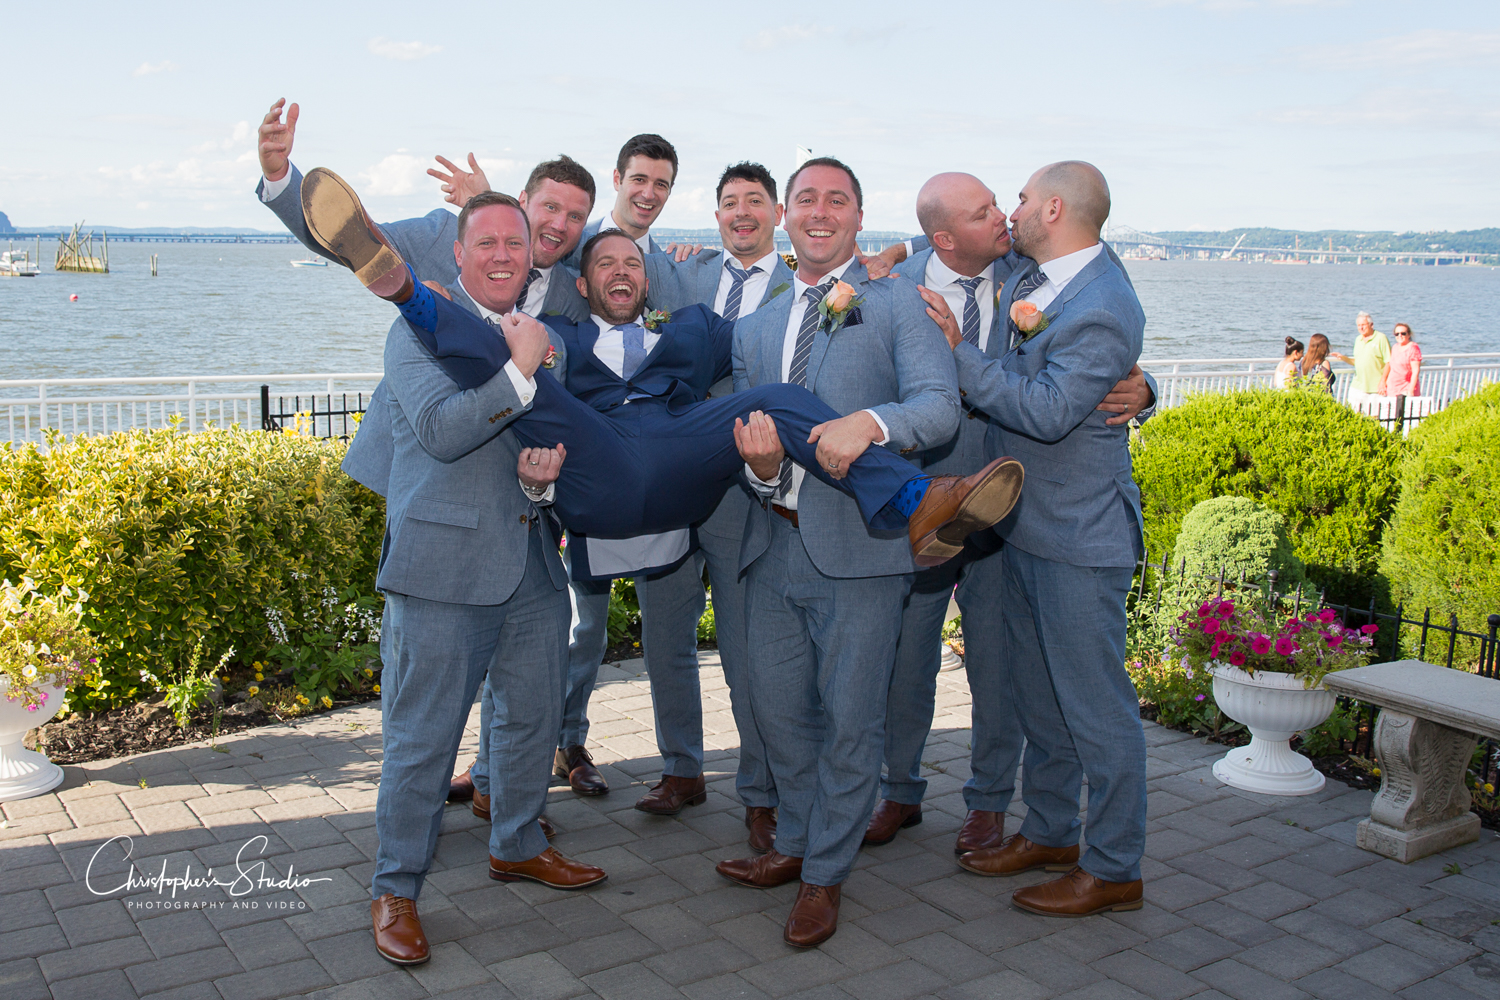 the-view-on-the-hudson-groom-and-groomsmen-photo